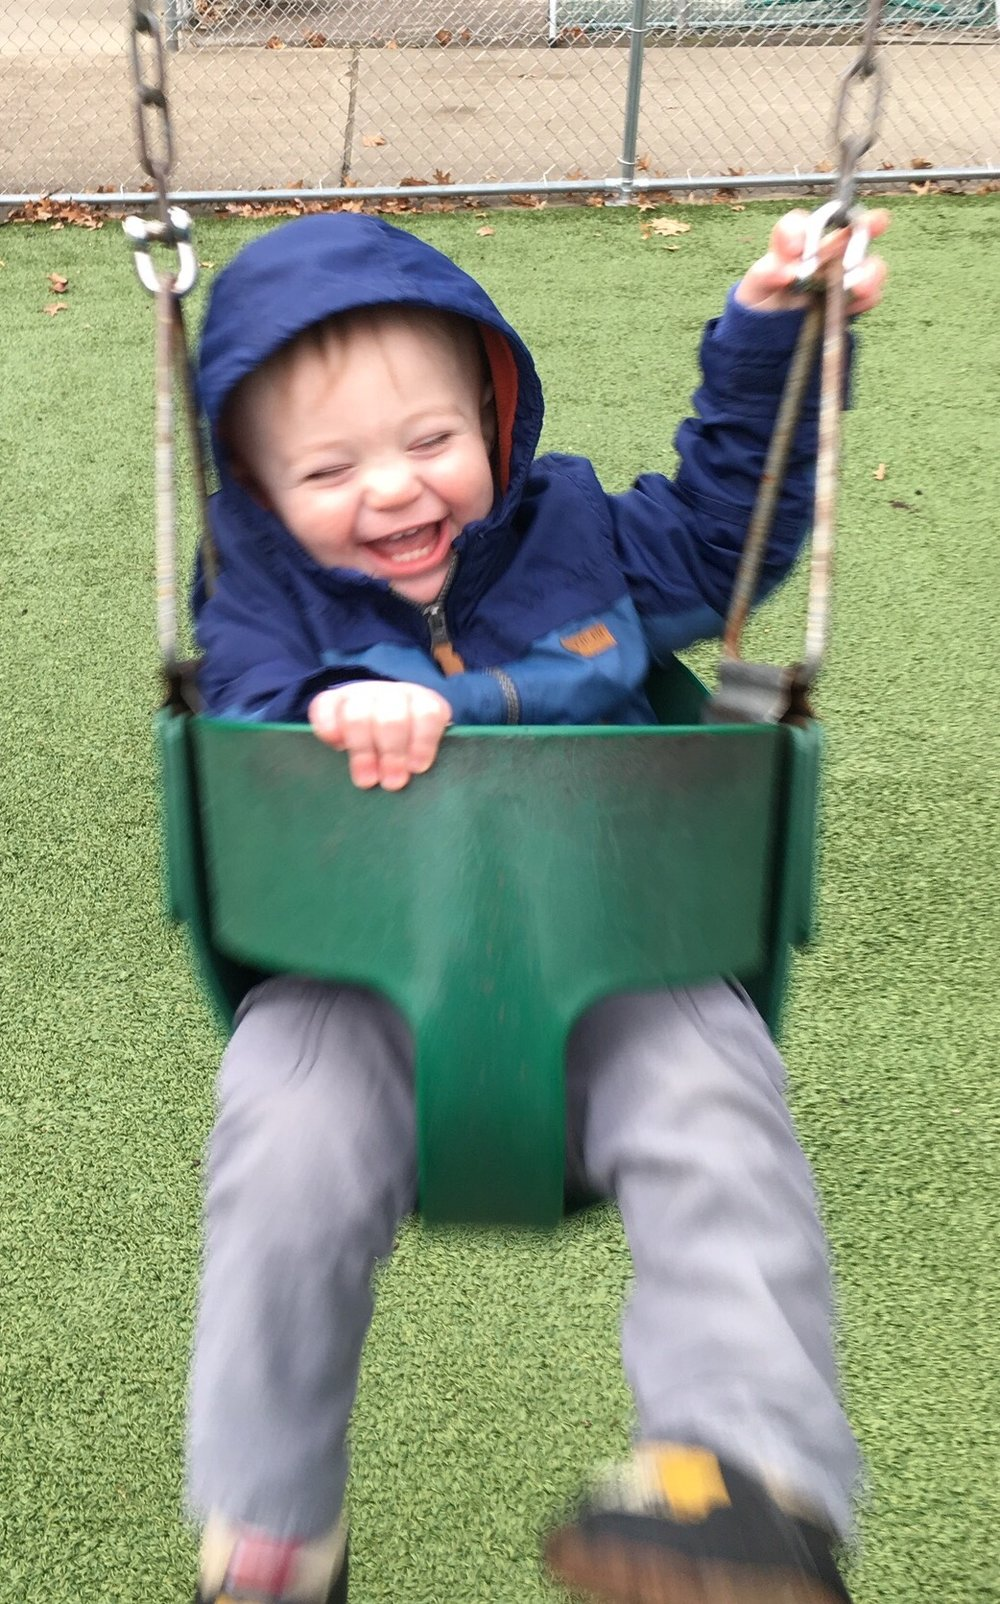 Julian laughs when he swings. Joshua just chills out.